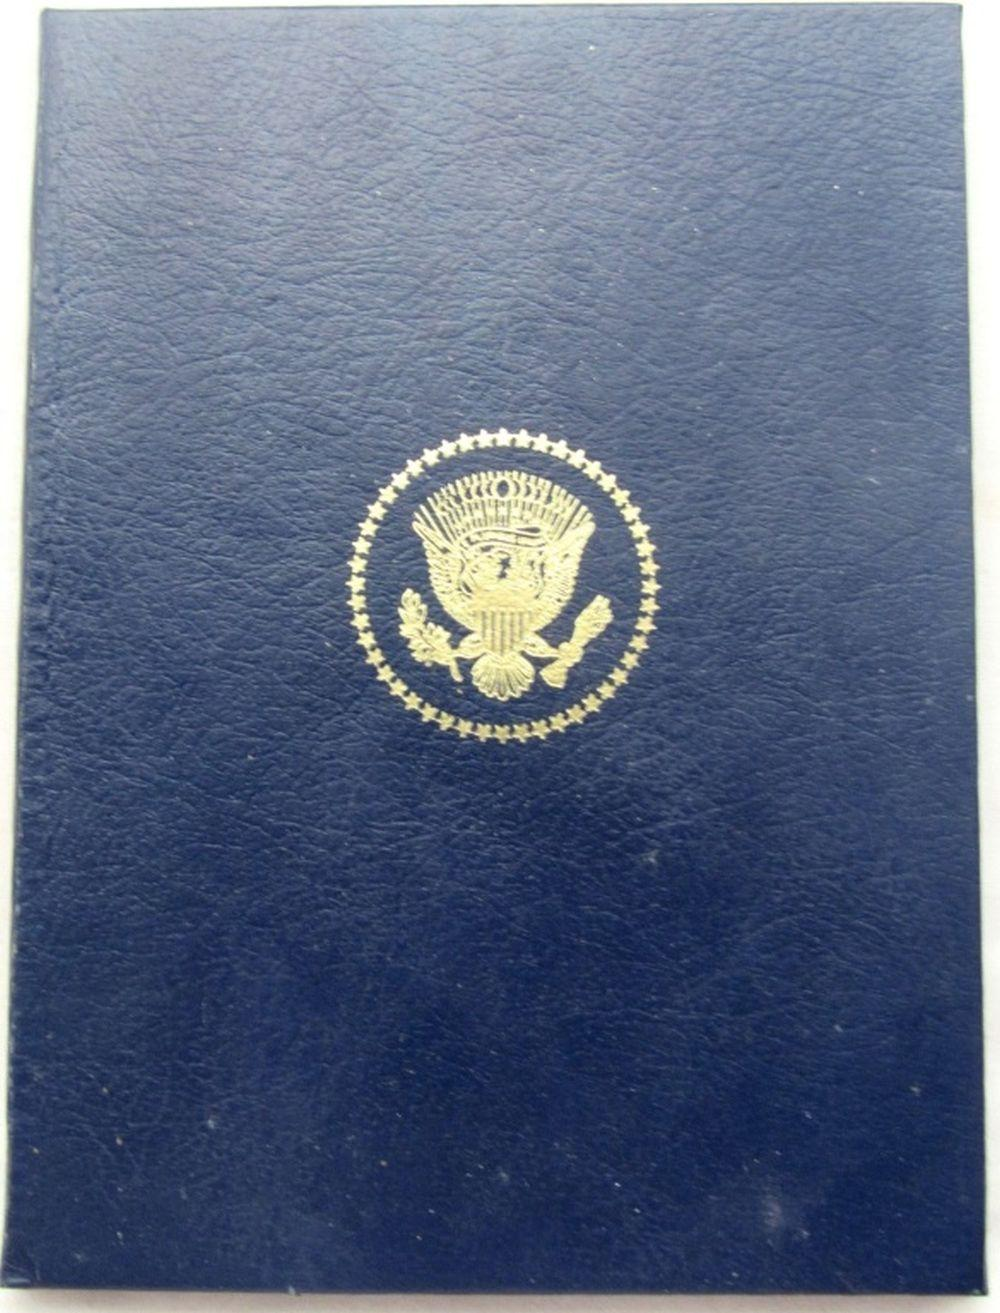 Lot 242: OFFICIAL INAUGURAL DAY JIMMY CARTER